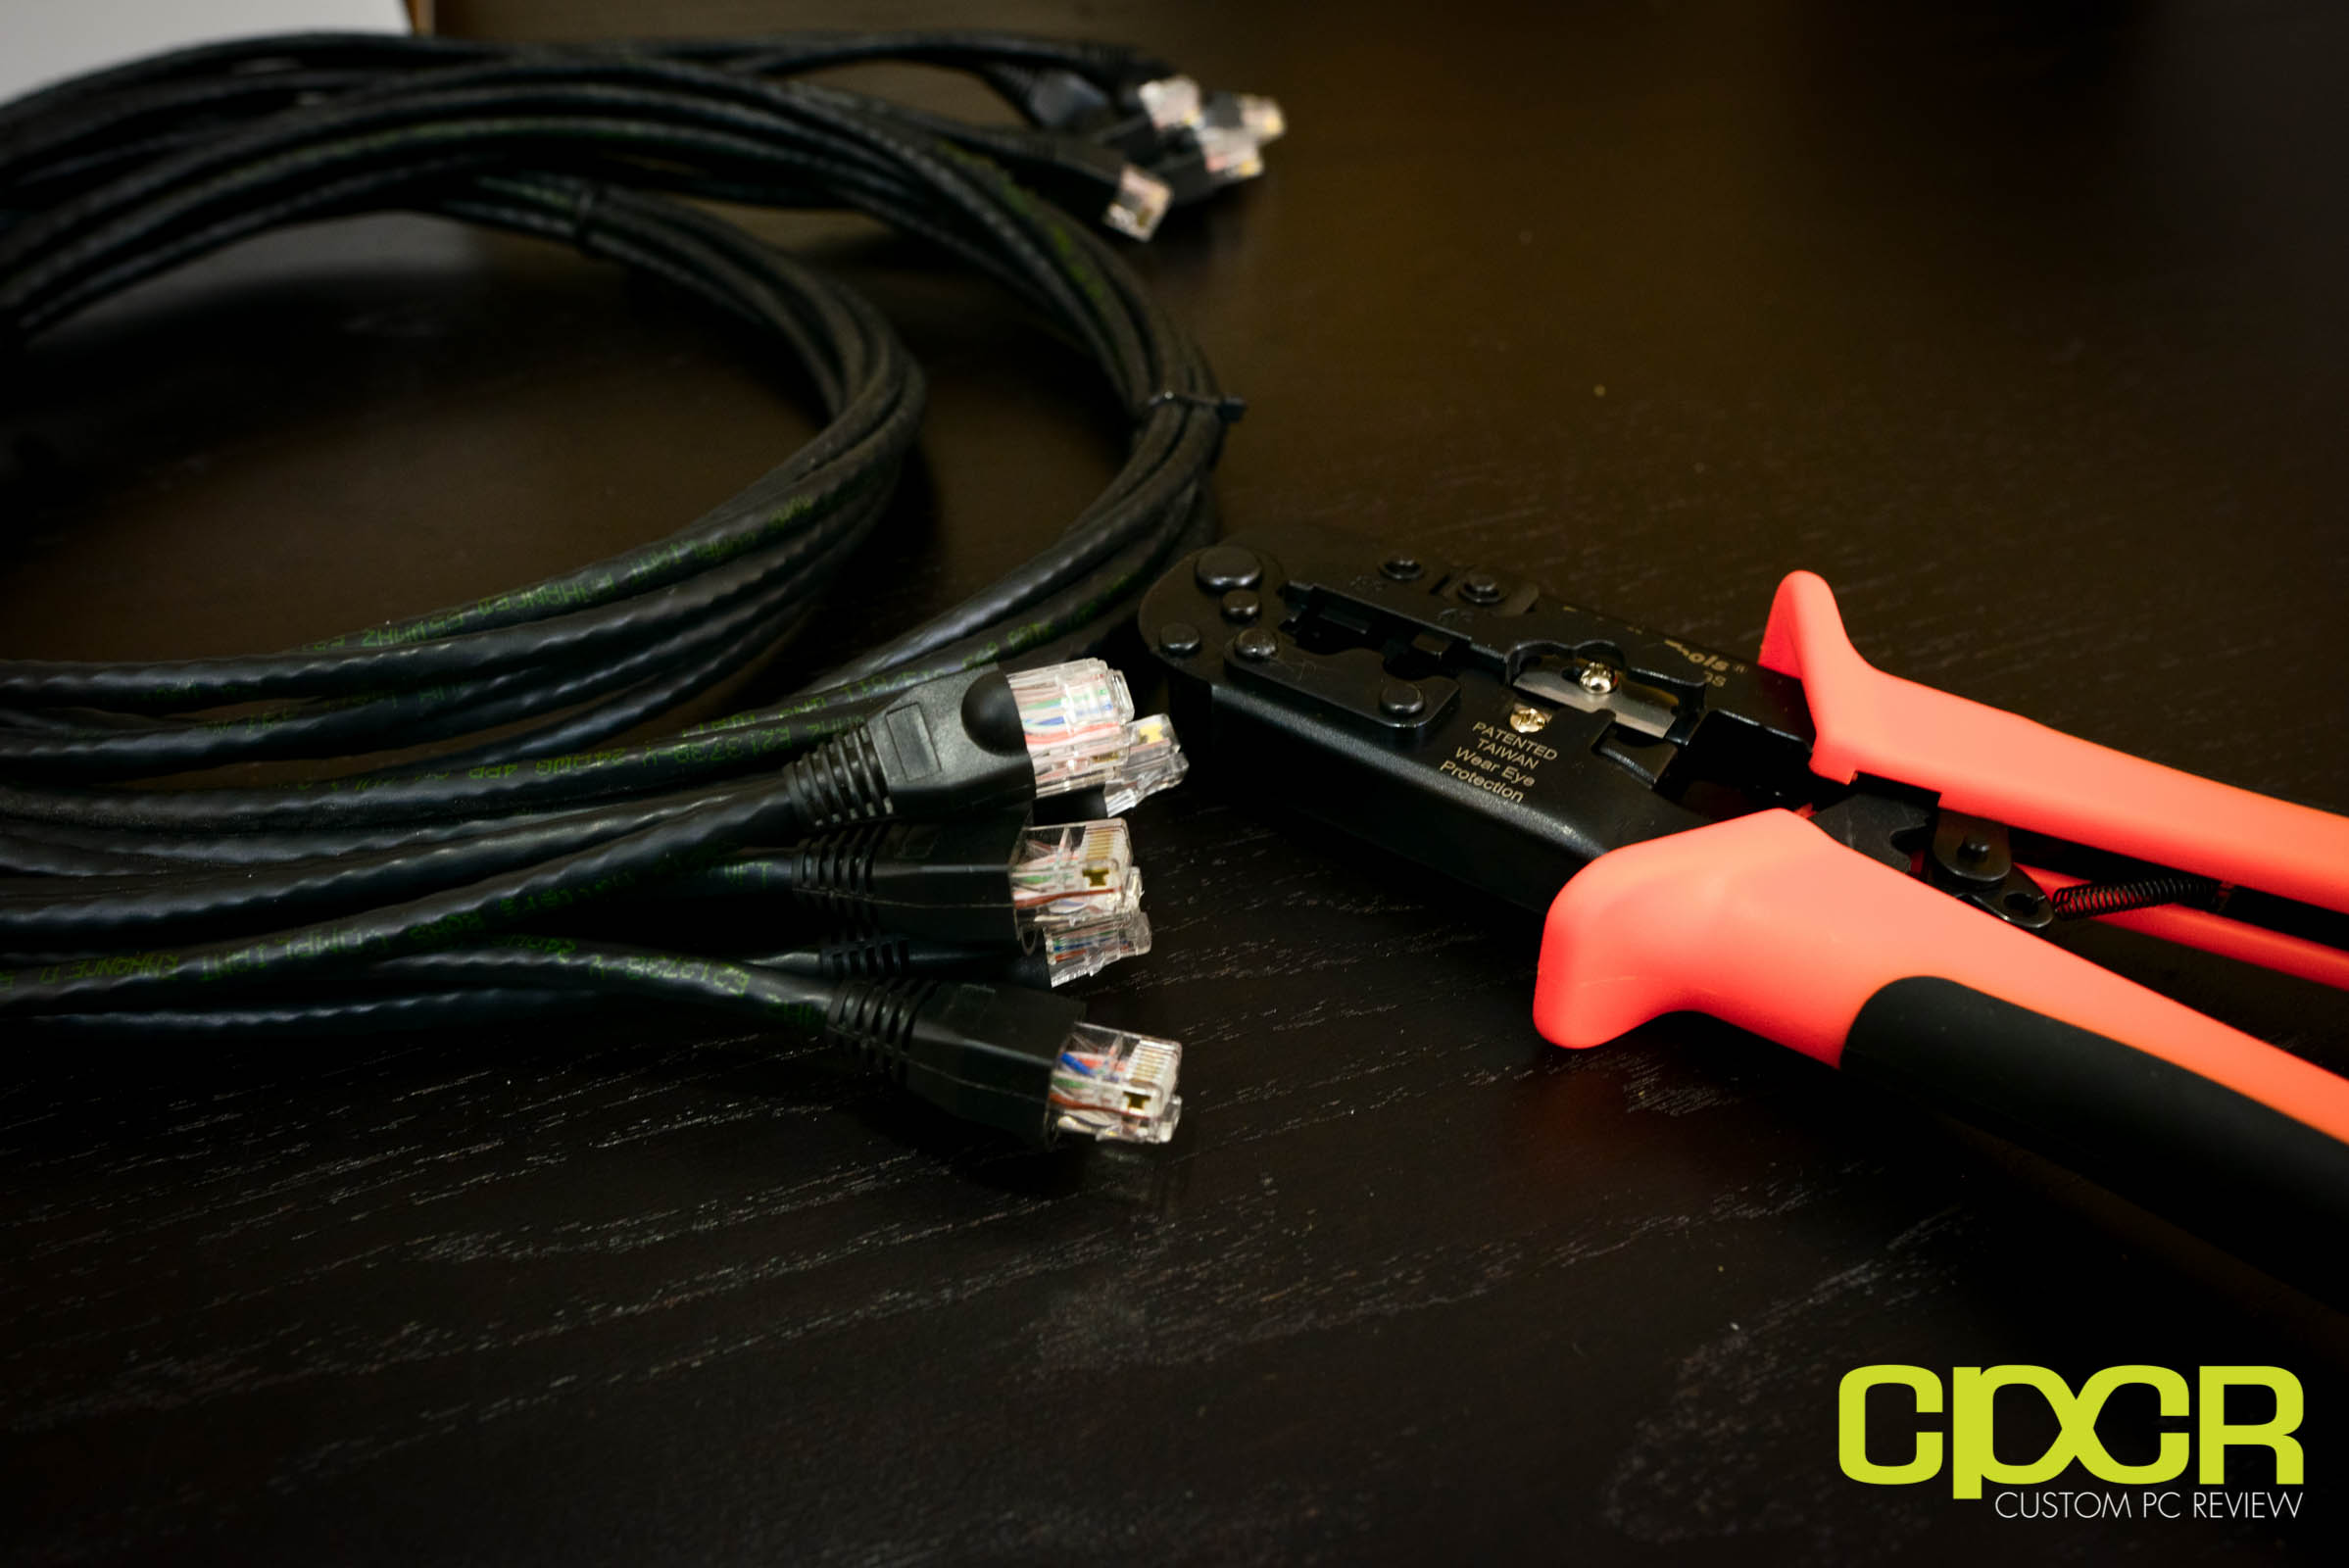 How To Make Ethernet Cables To Save Money Manual Guide